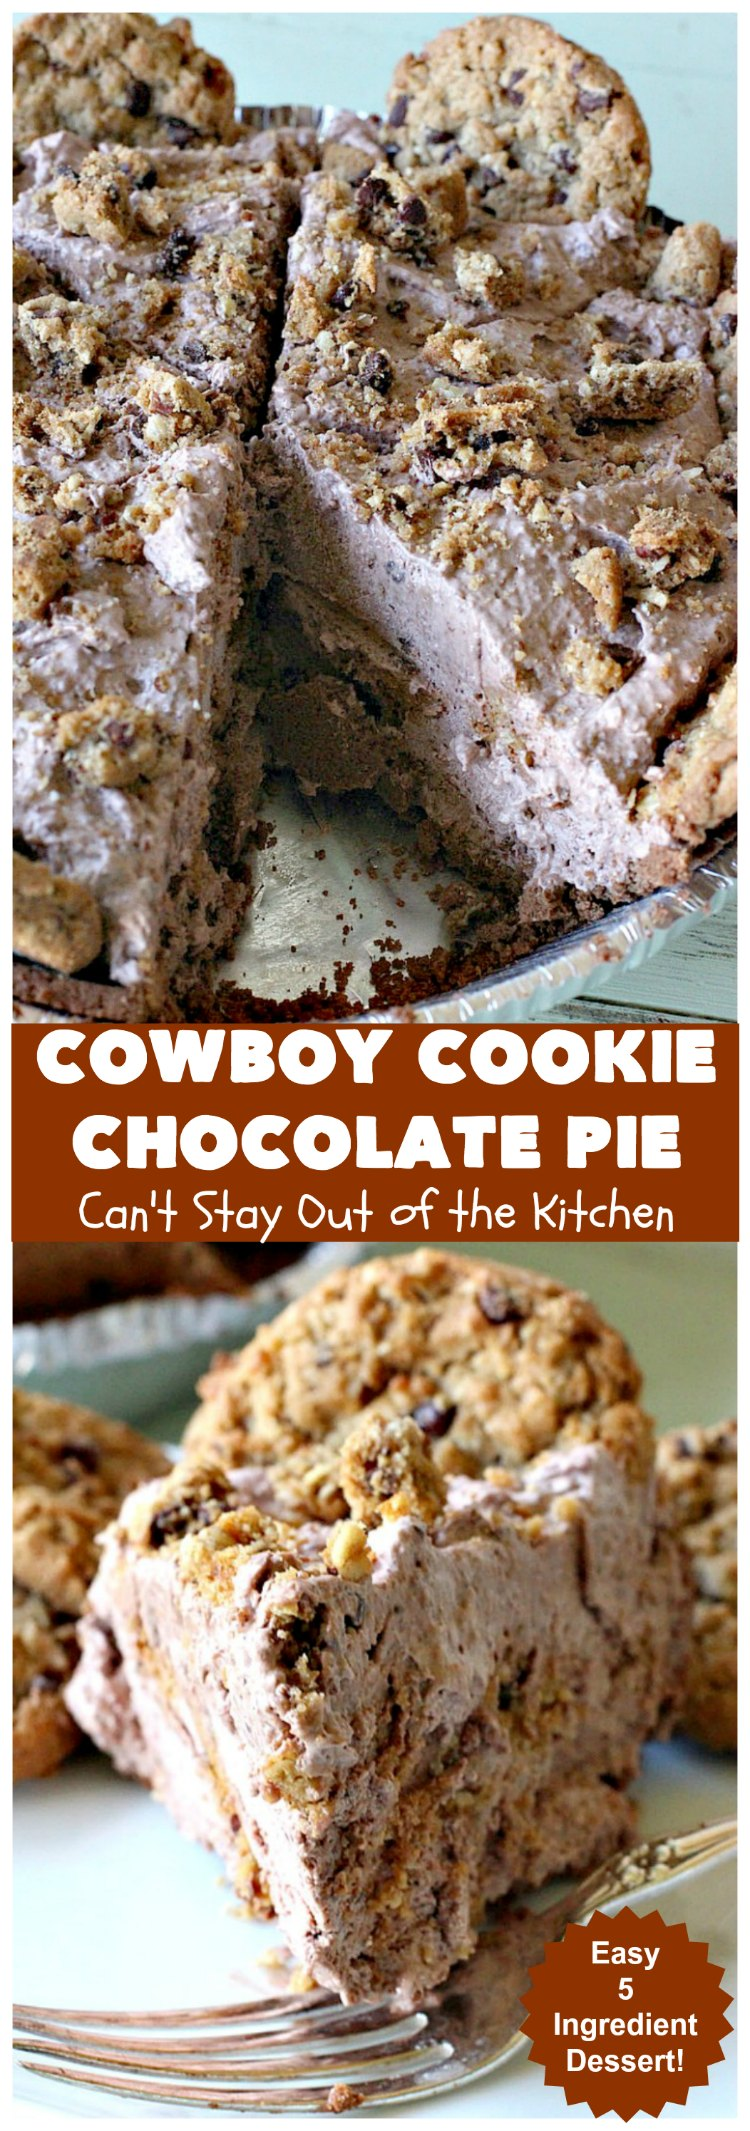 Cowboy Cookie Chocolate Pie | Can't Stay Out of the Kitchen | this luscious & creamy #chocolate #pie is made with #CowboyCookies! Each #cookie contains #pecans #ChocolateChips & #oatmeal. Great #dessert pie for company or #holidays. #CowboyCookieChocolatePie #ChocolateDessert